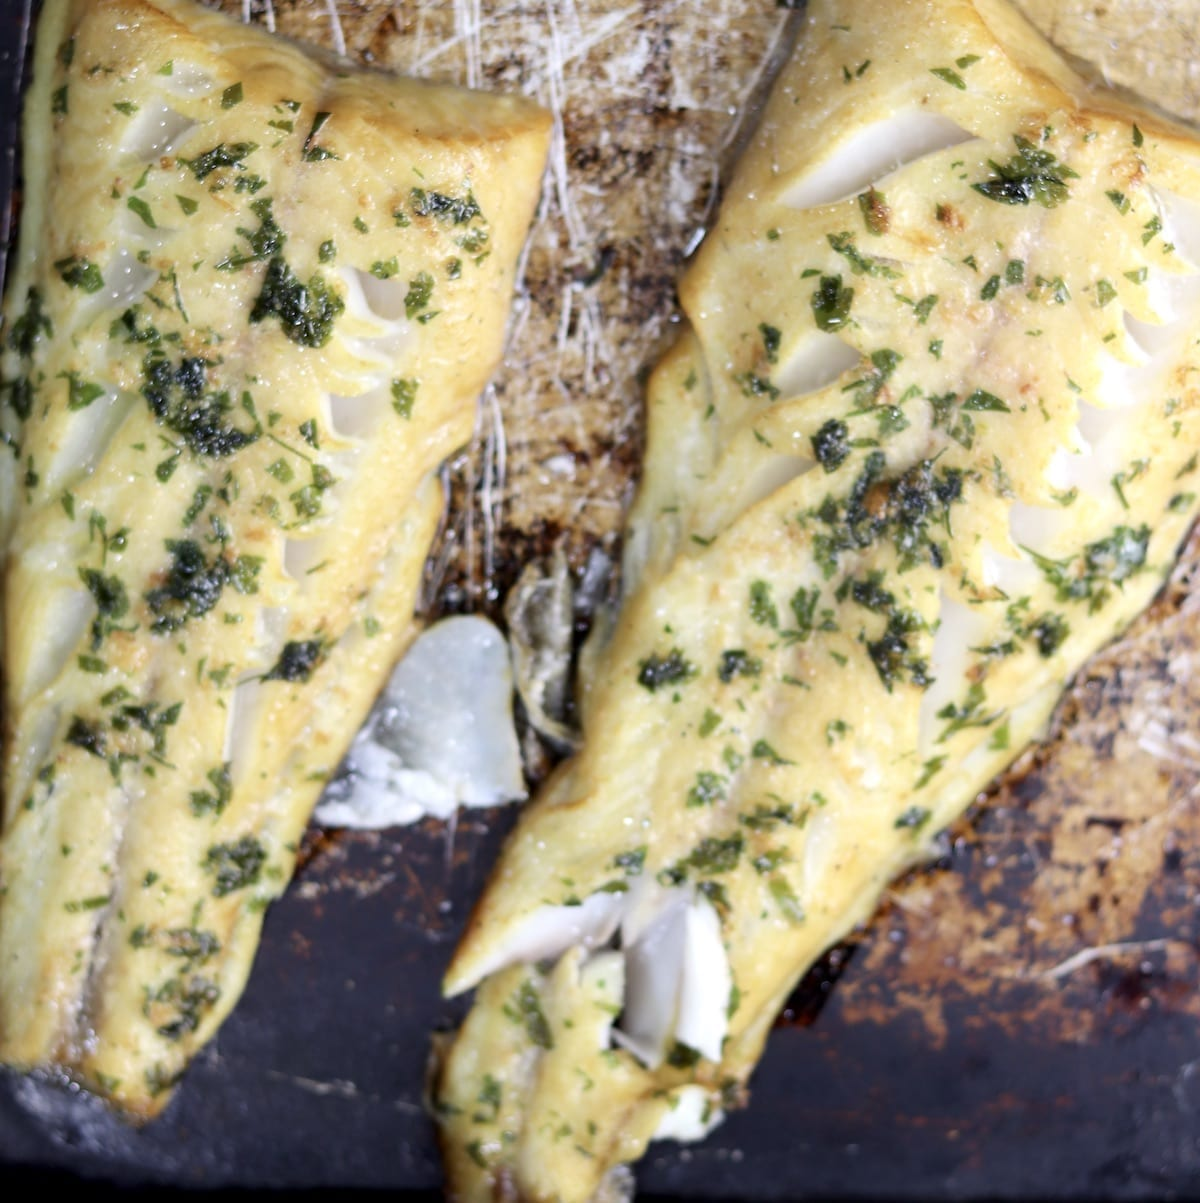 Grilled Sablefish with garlic butter